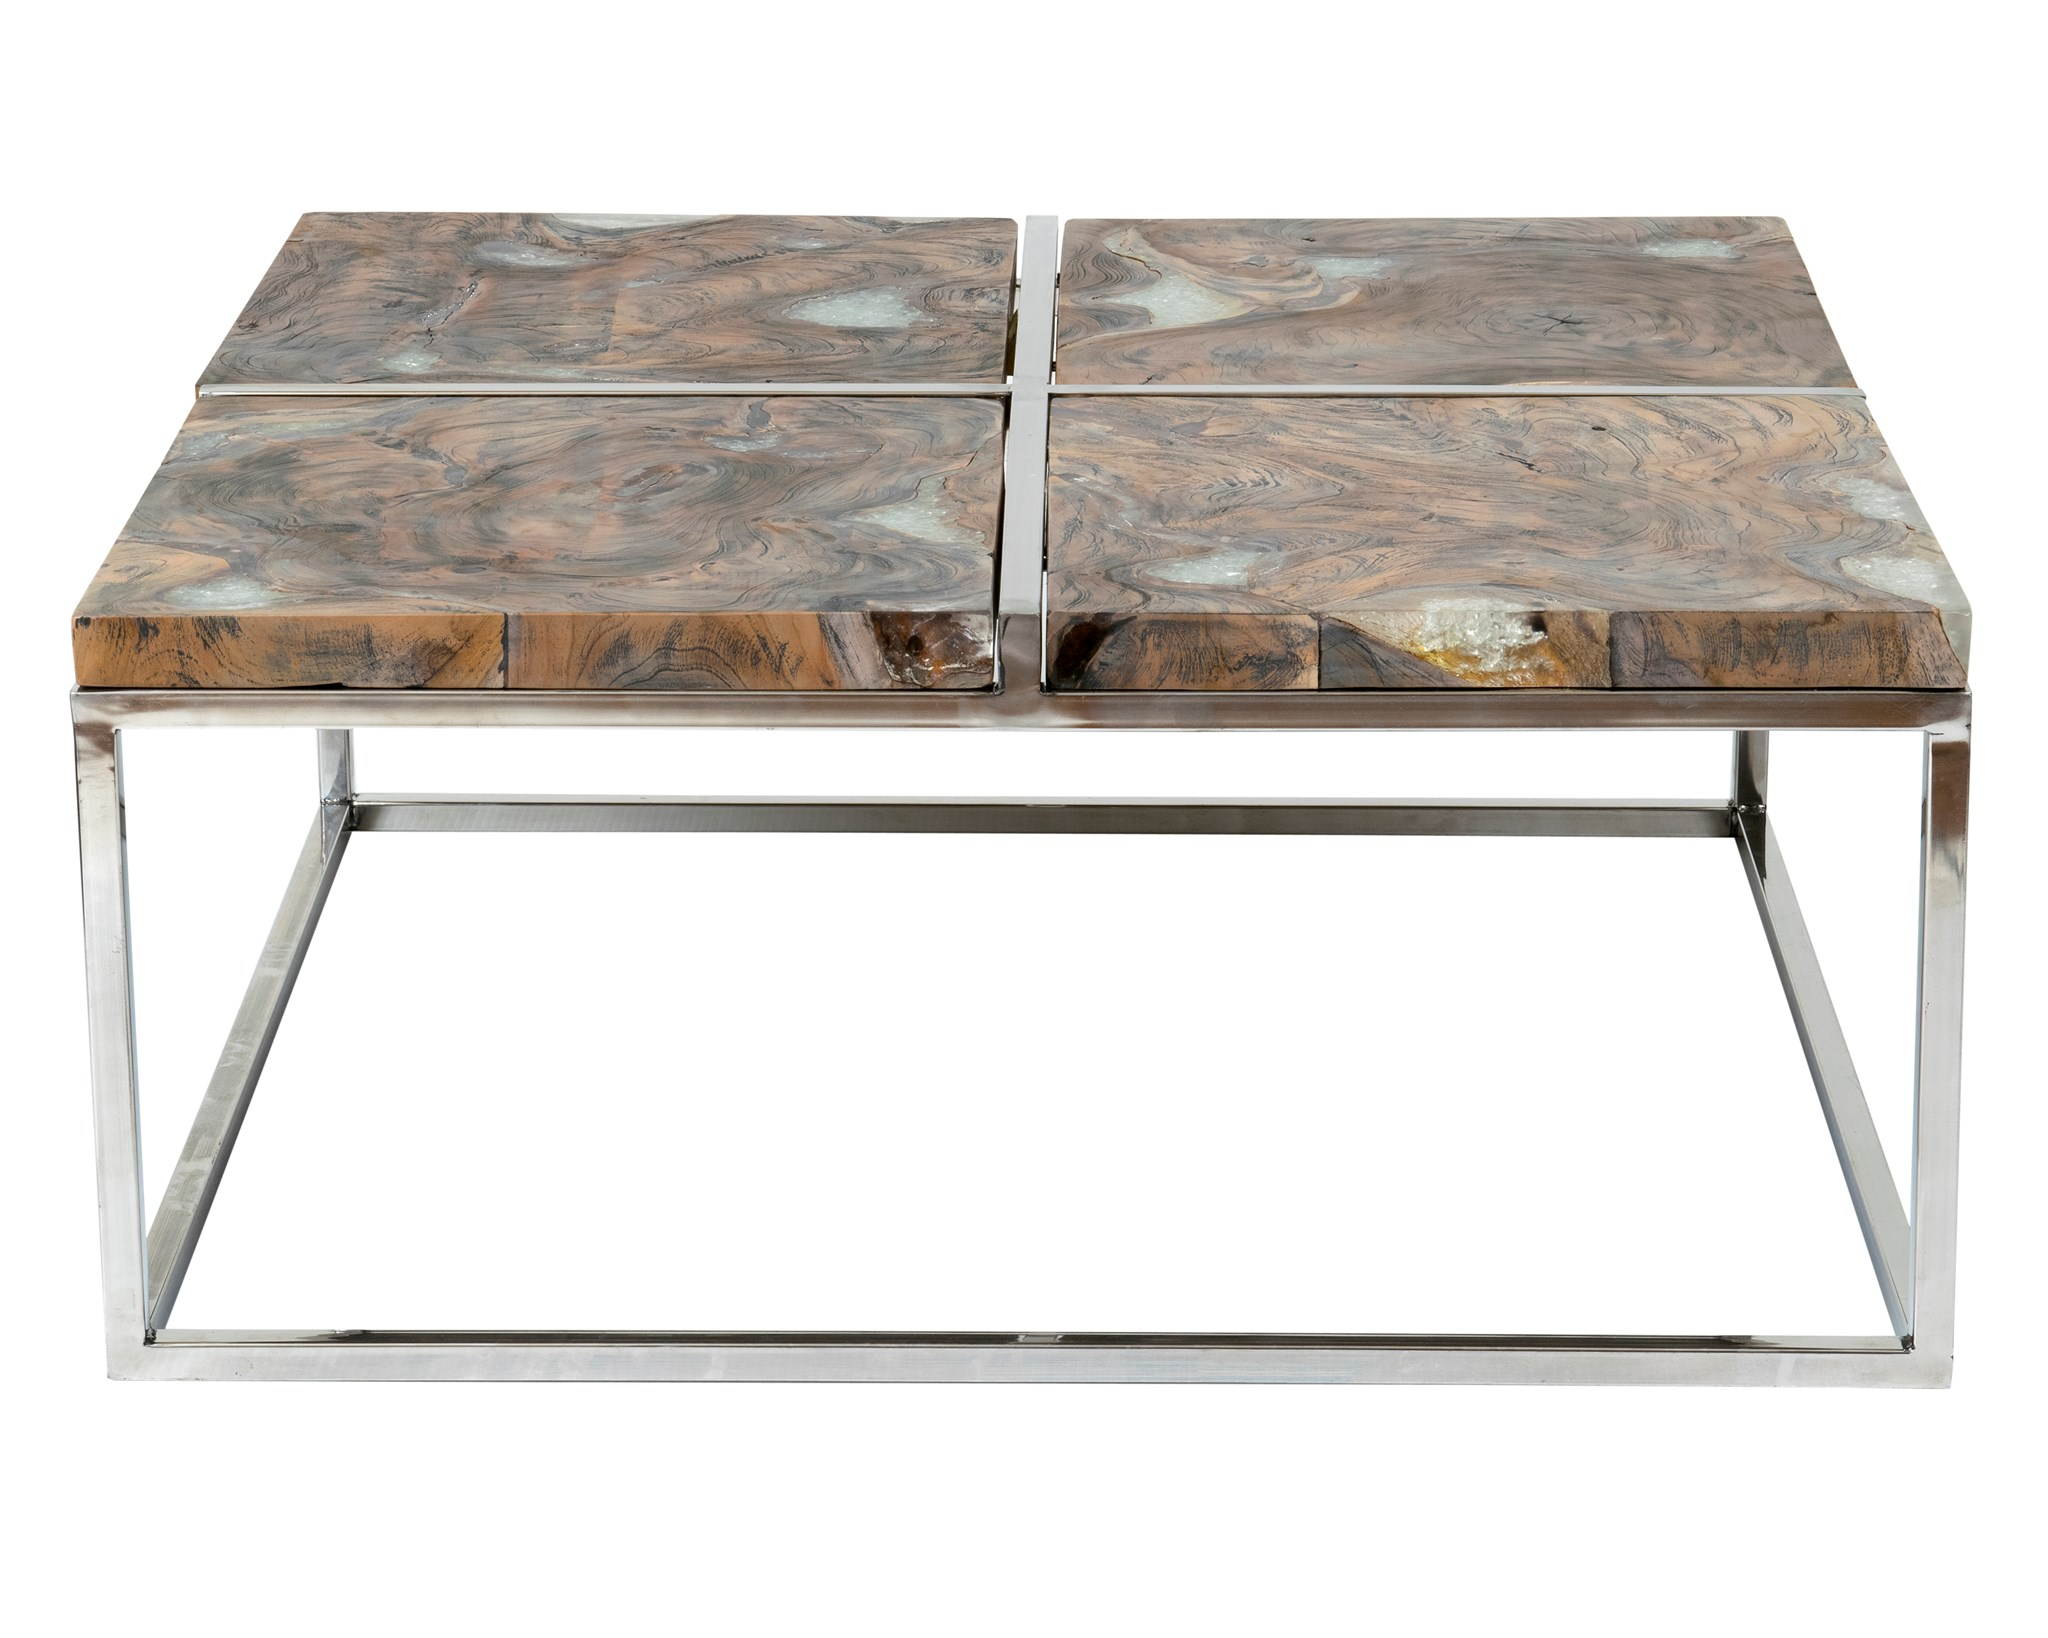 Uptown Icy Wood Coffee Table With Stainless Steel Base   Grey  Patina(36x36X16)